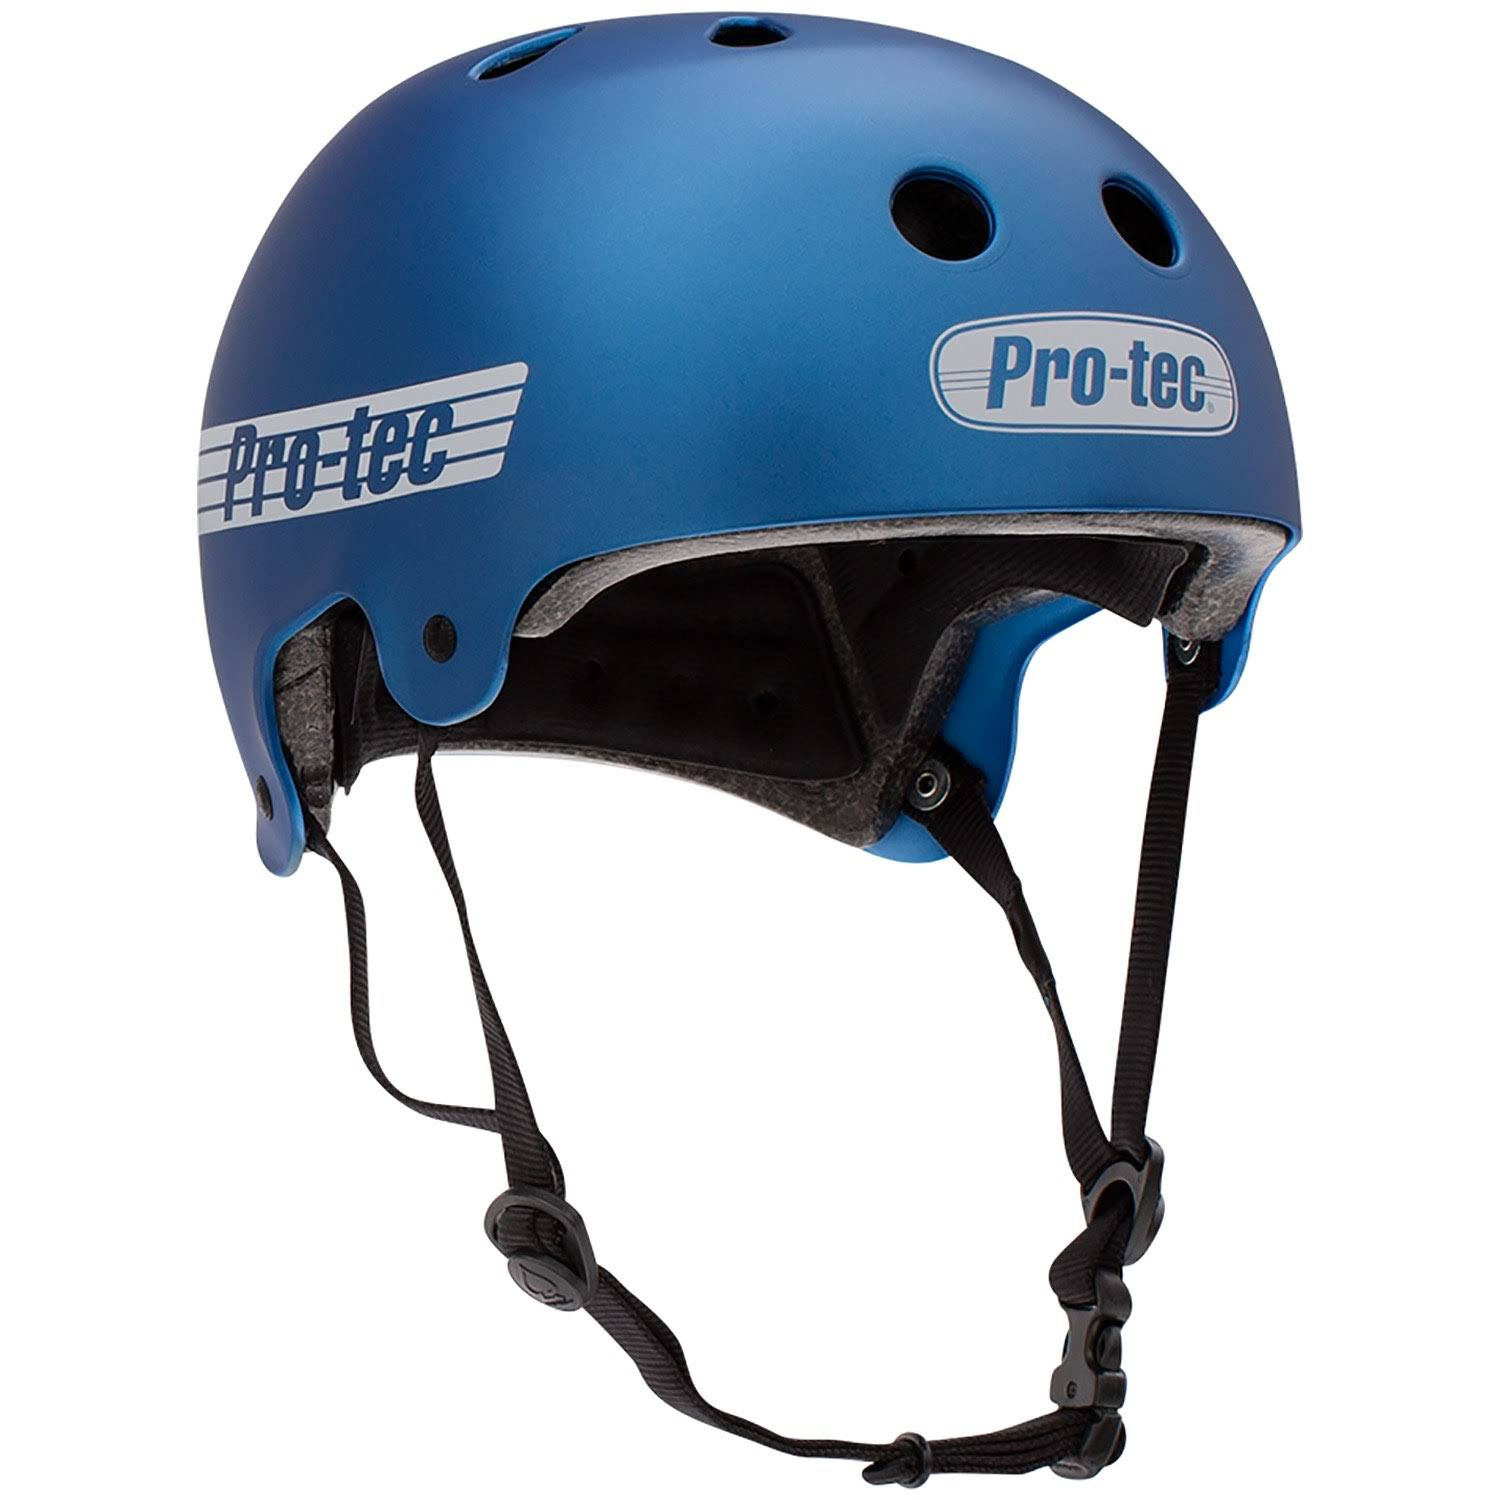 Pro Tec Old School Certified Helmet - Matte Metallic Blue